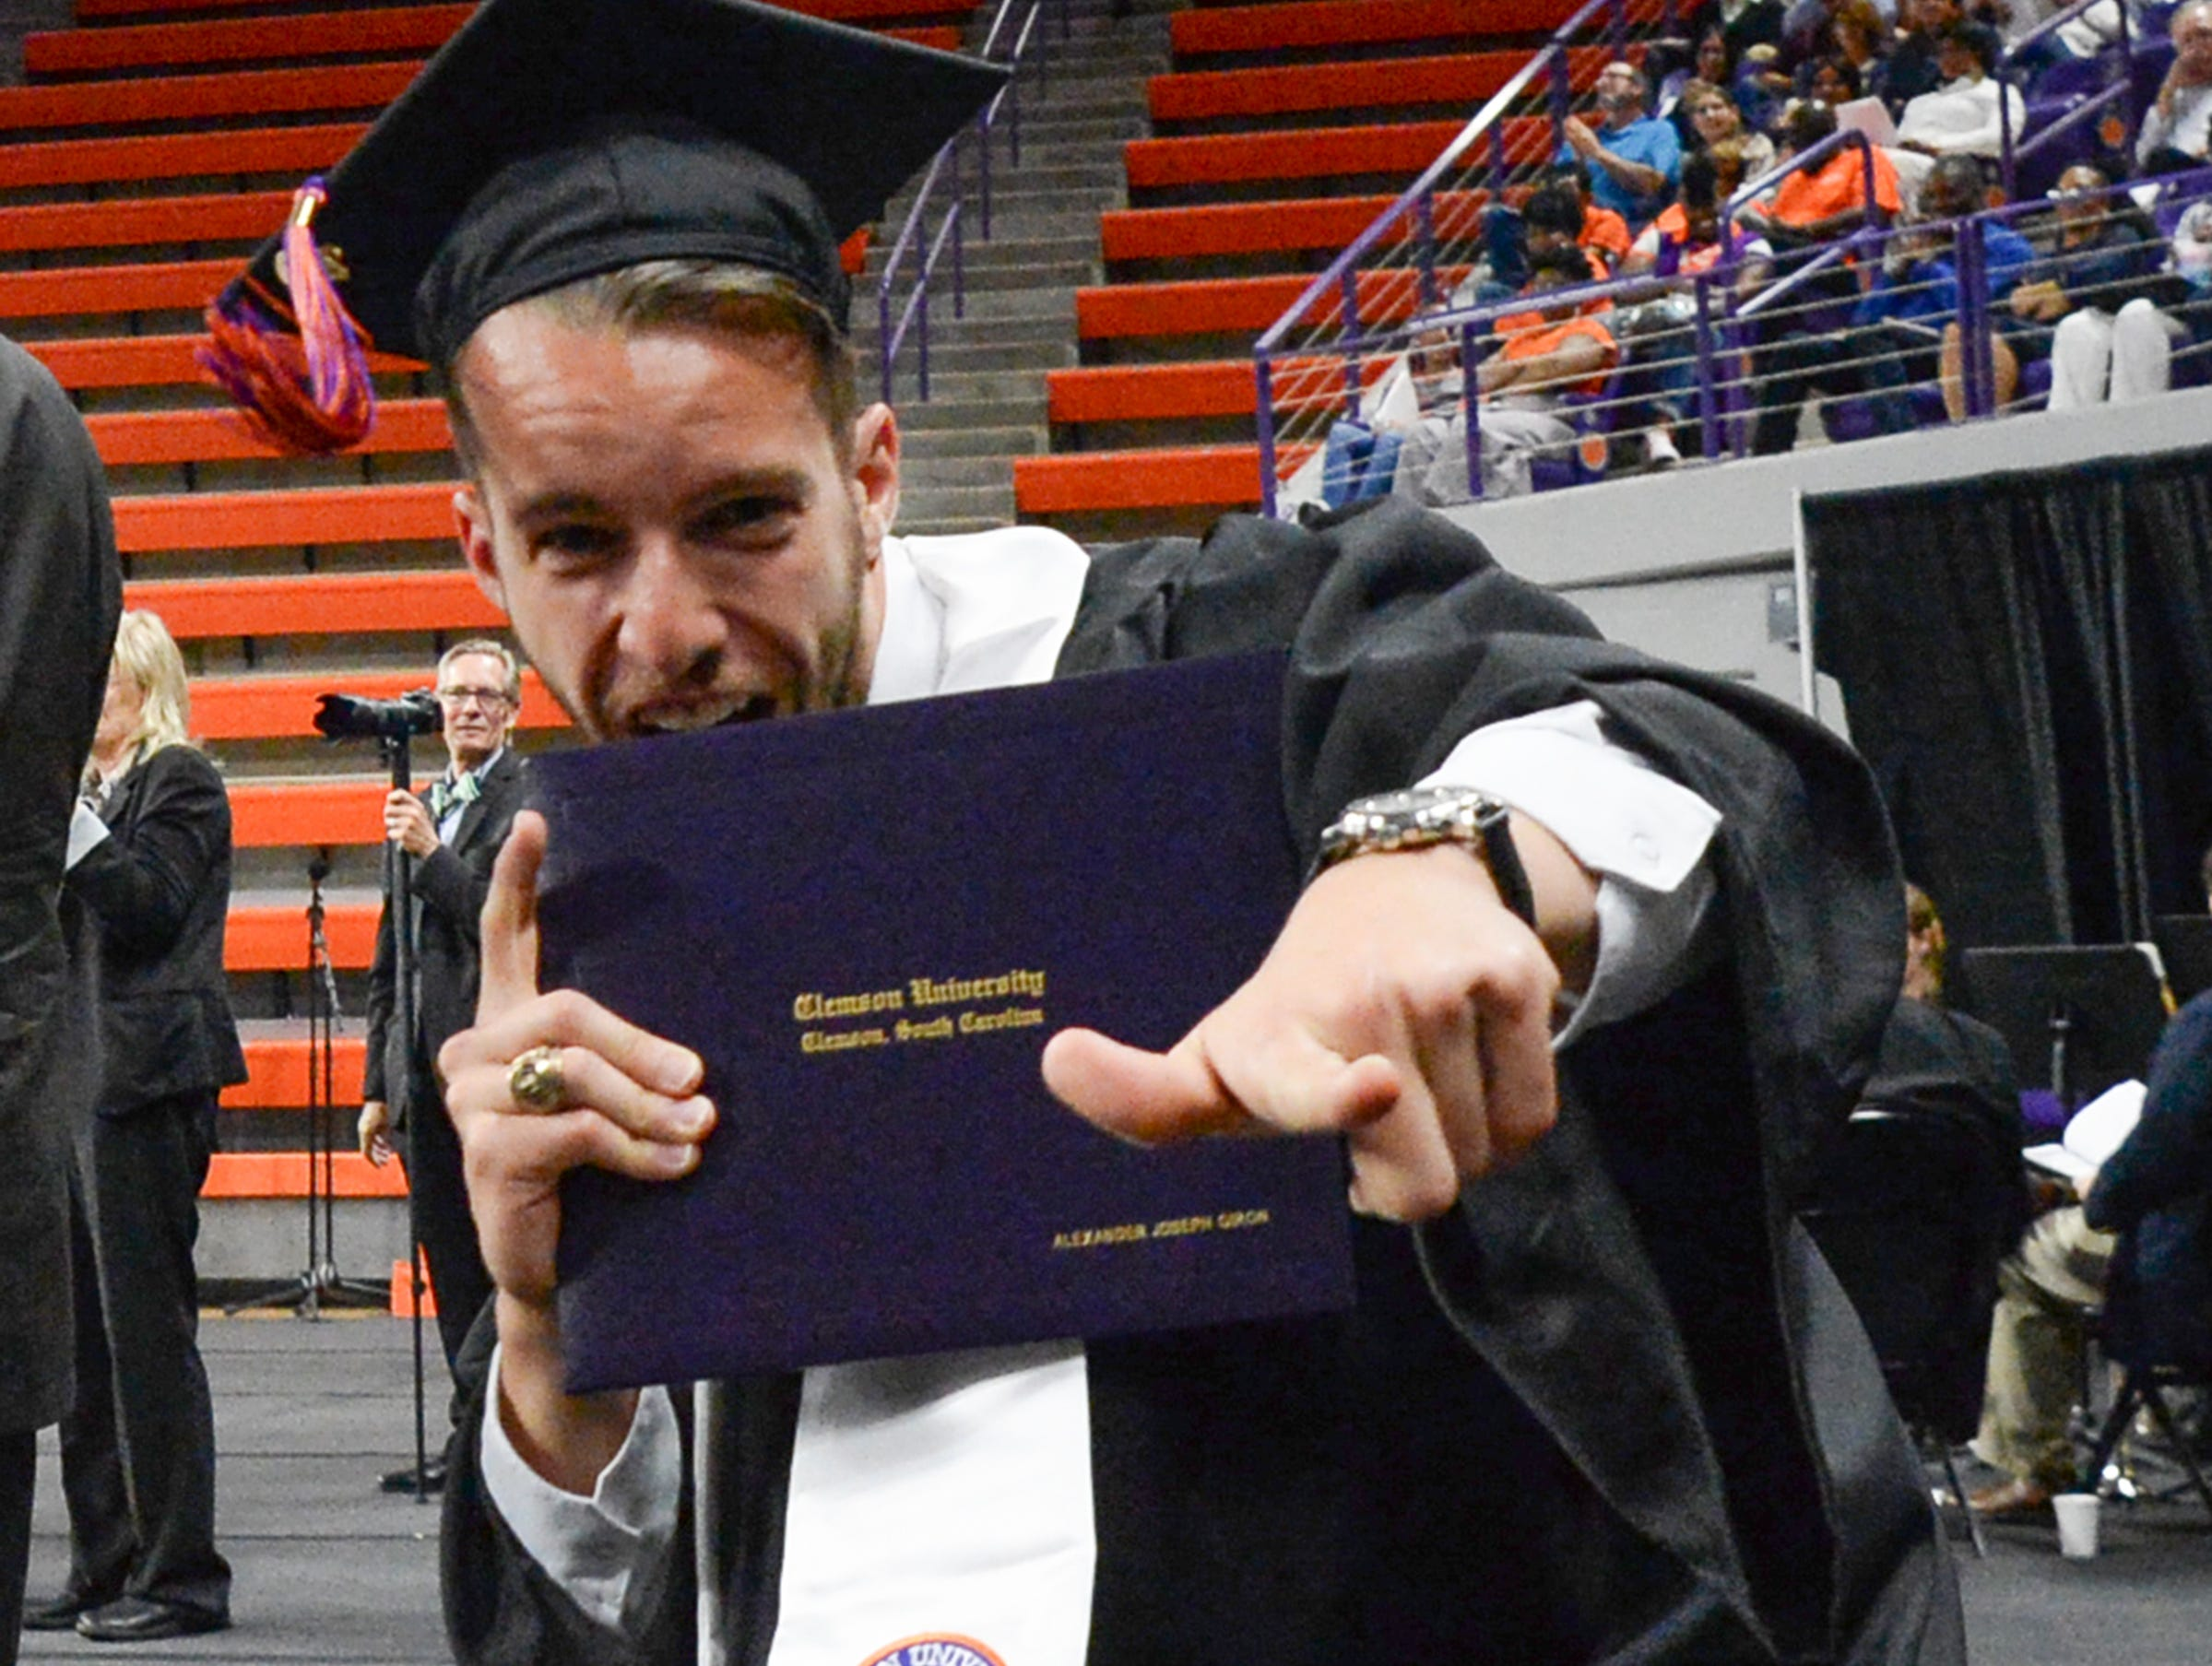 Alexander Giron reacts after getting his diploma during Clemson University commencement ceremonies in Littlejohn Coliseum in Clemson Friday, May 10, 2019.